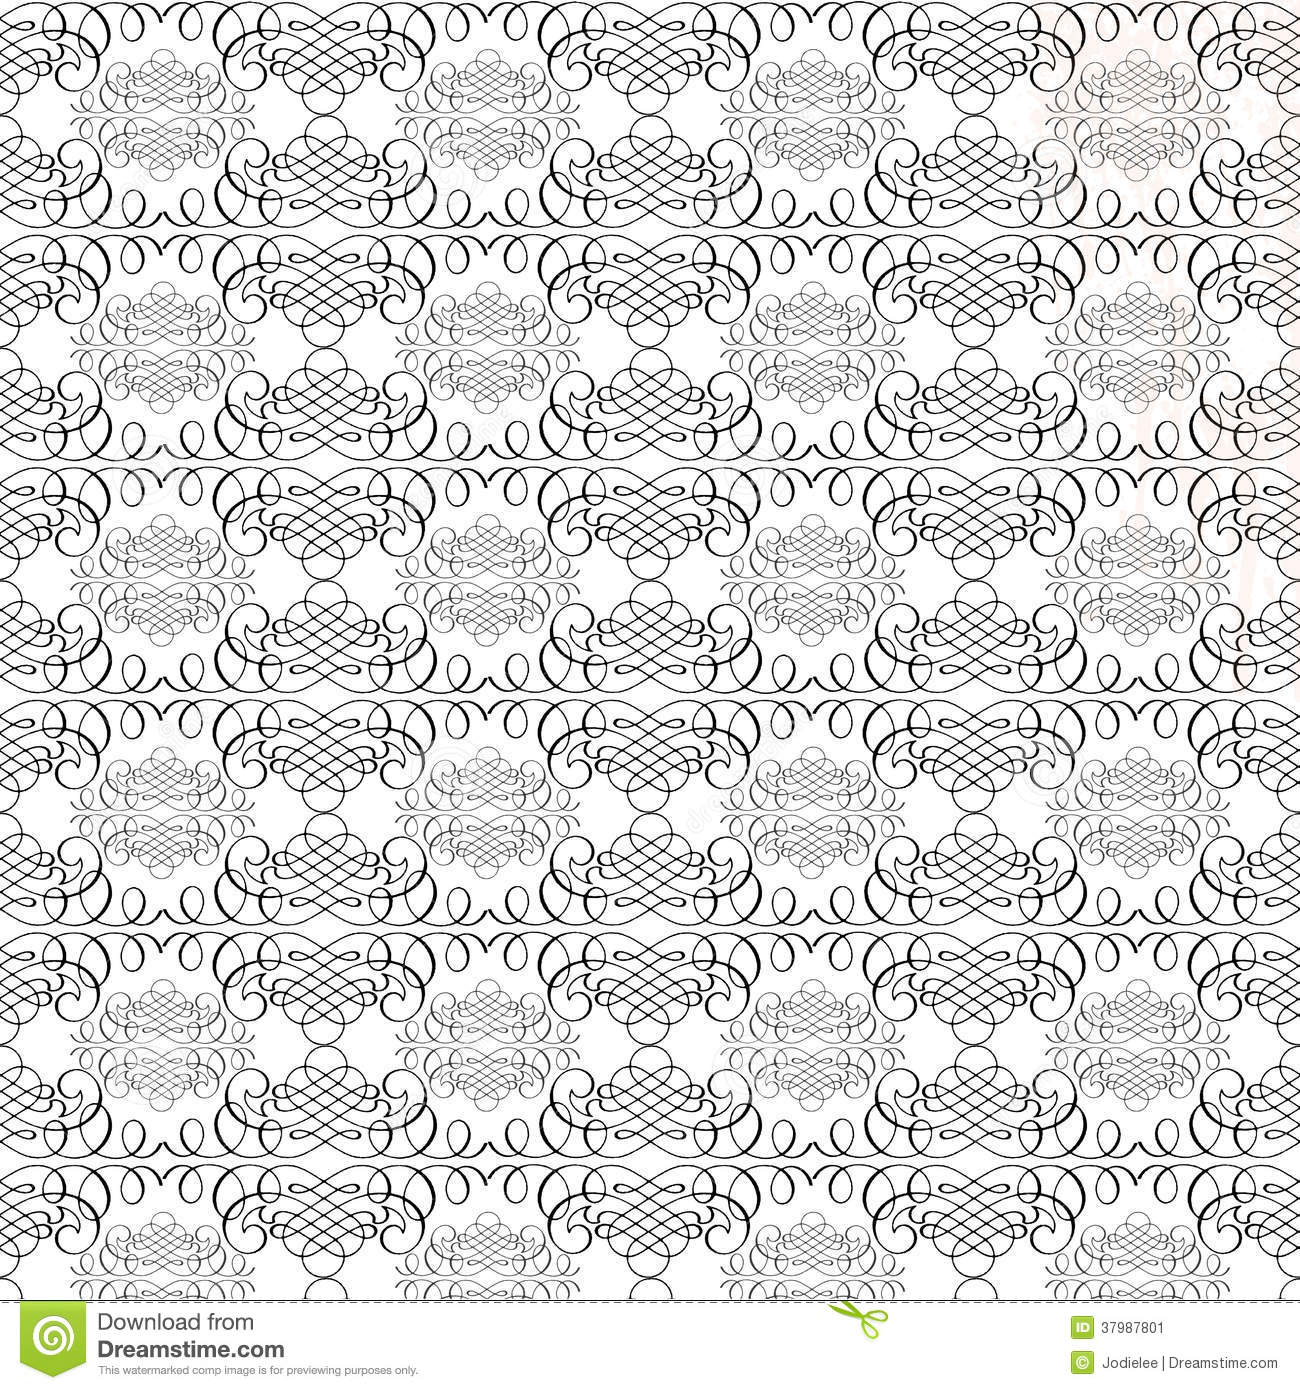 Black and white vintage calligraphy swirl repeat pattern